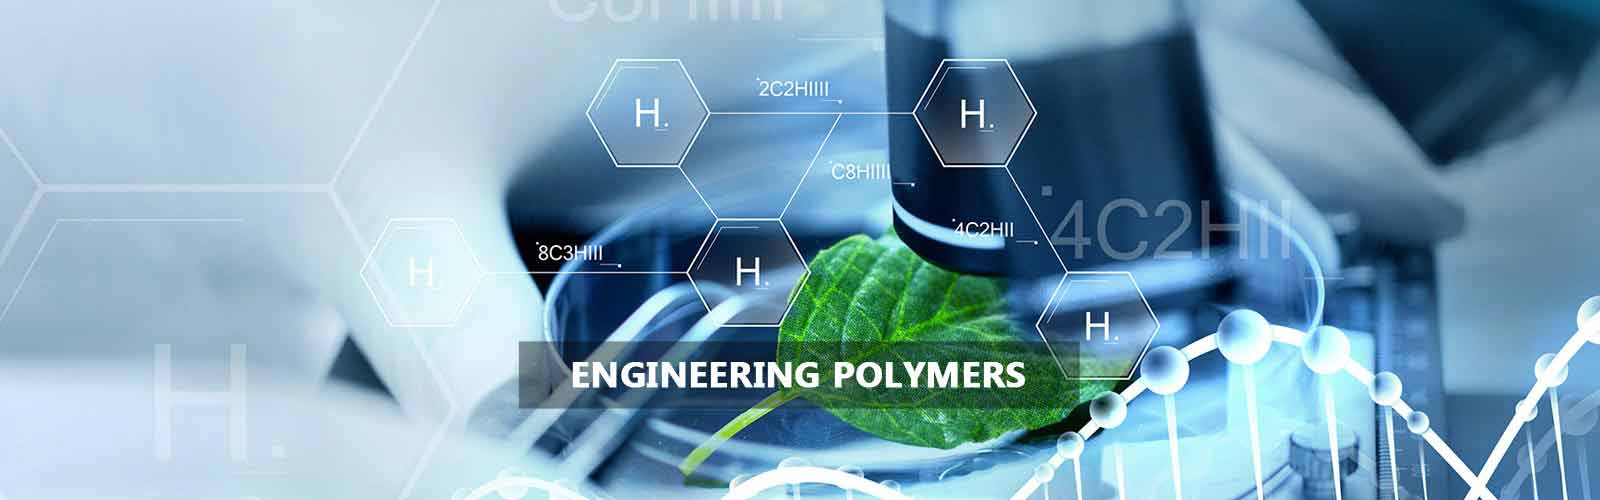 Engineering Polymers